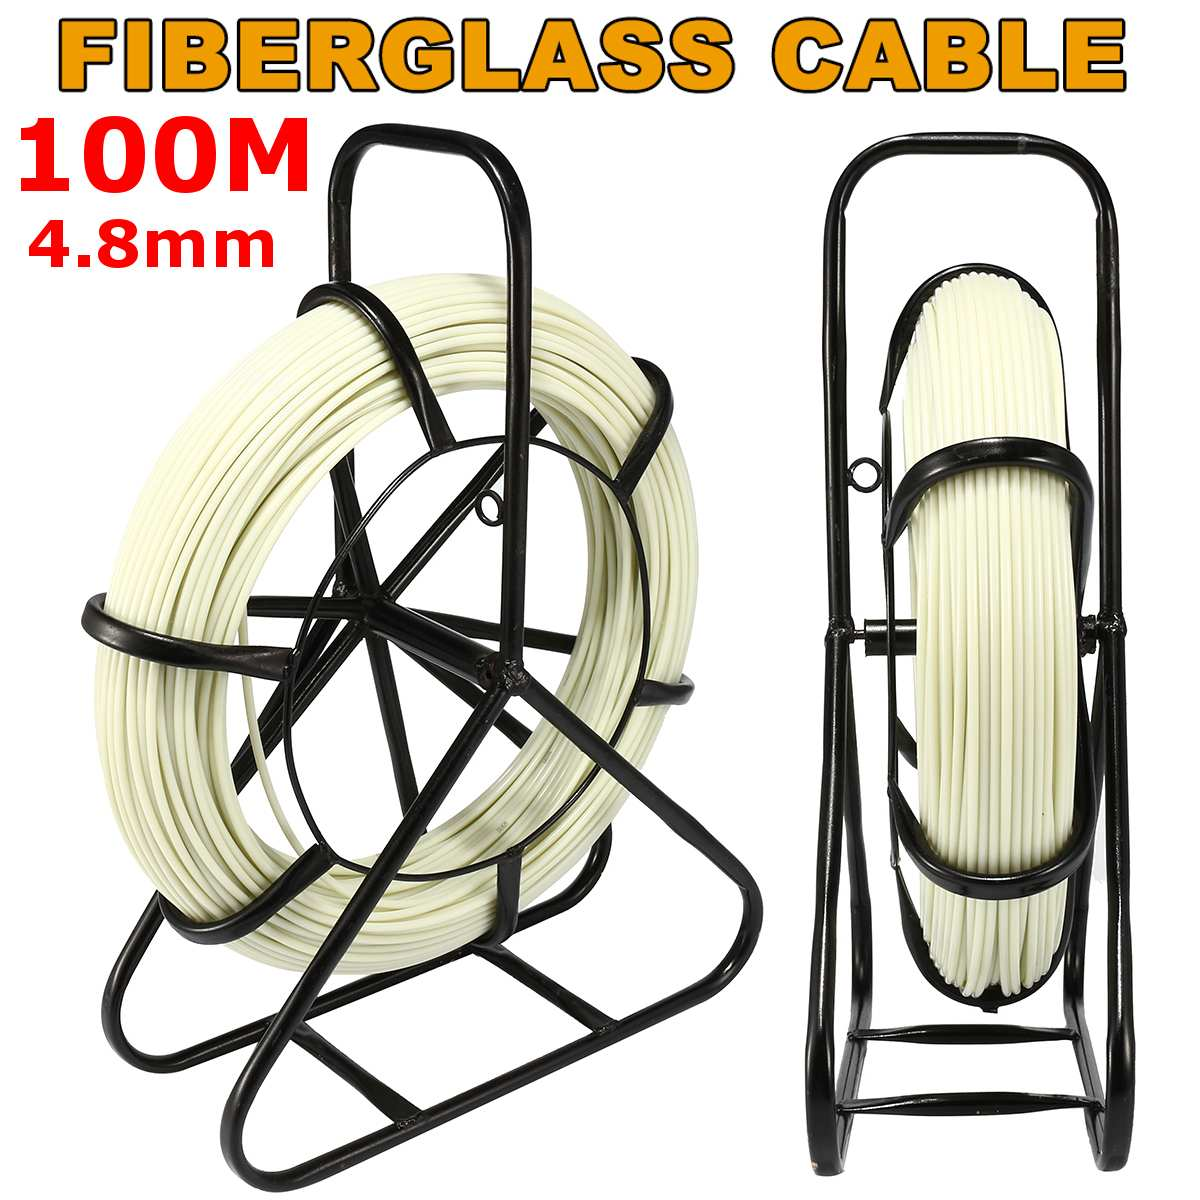 4.8mm 100M Fiberglass Wire Cable Running Rod Snake Fish Rodder Puller Flexi Lead Electric Fiberglass Wire Cable Running Rod New4.8mm 100M Fiberglass Wire Cable Running Rod Snake Fish Rodder Puller Flexi Lead Electric Fiberglass Wire Cable Running Rod New